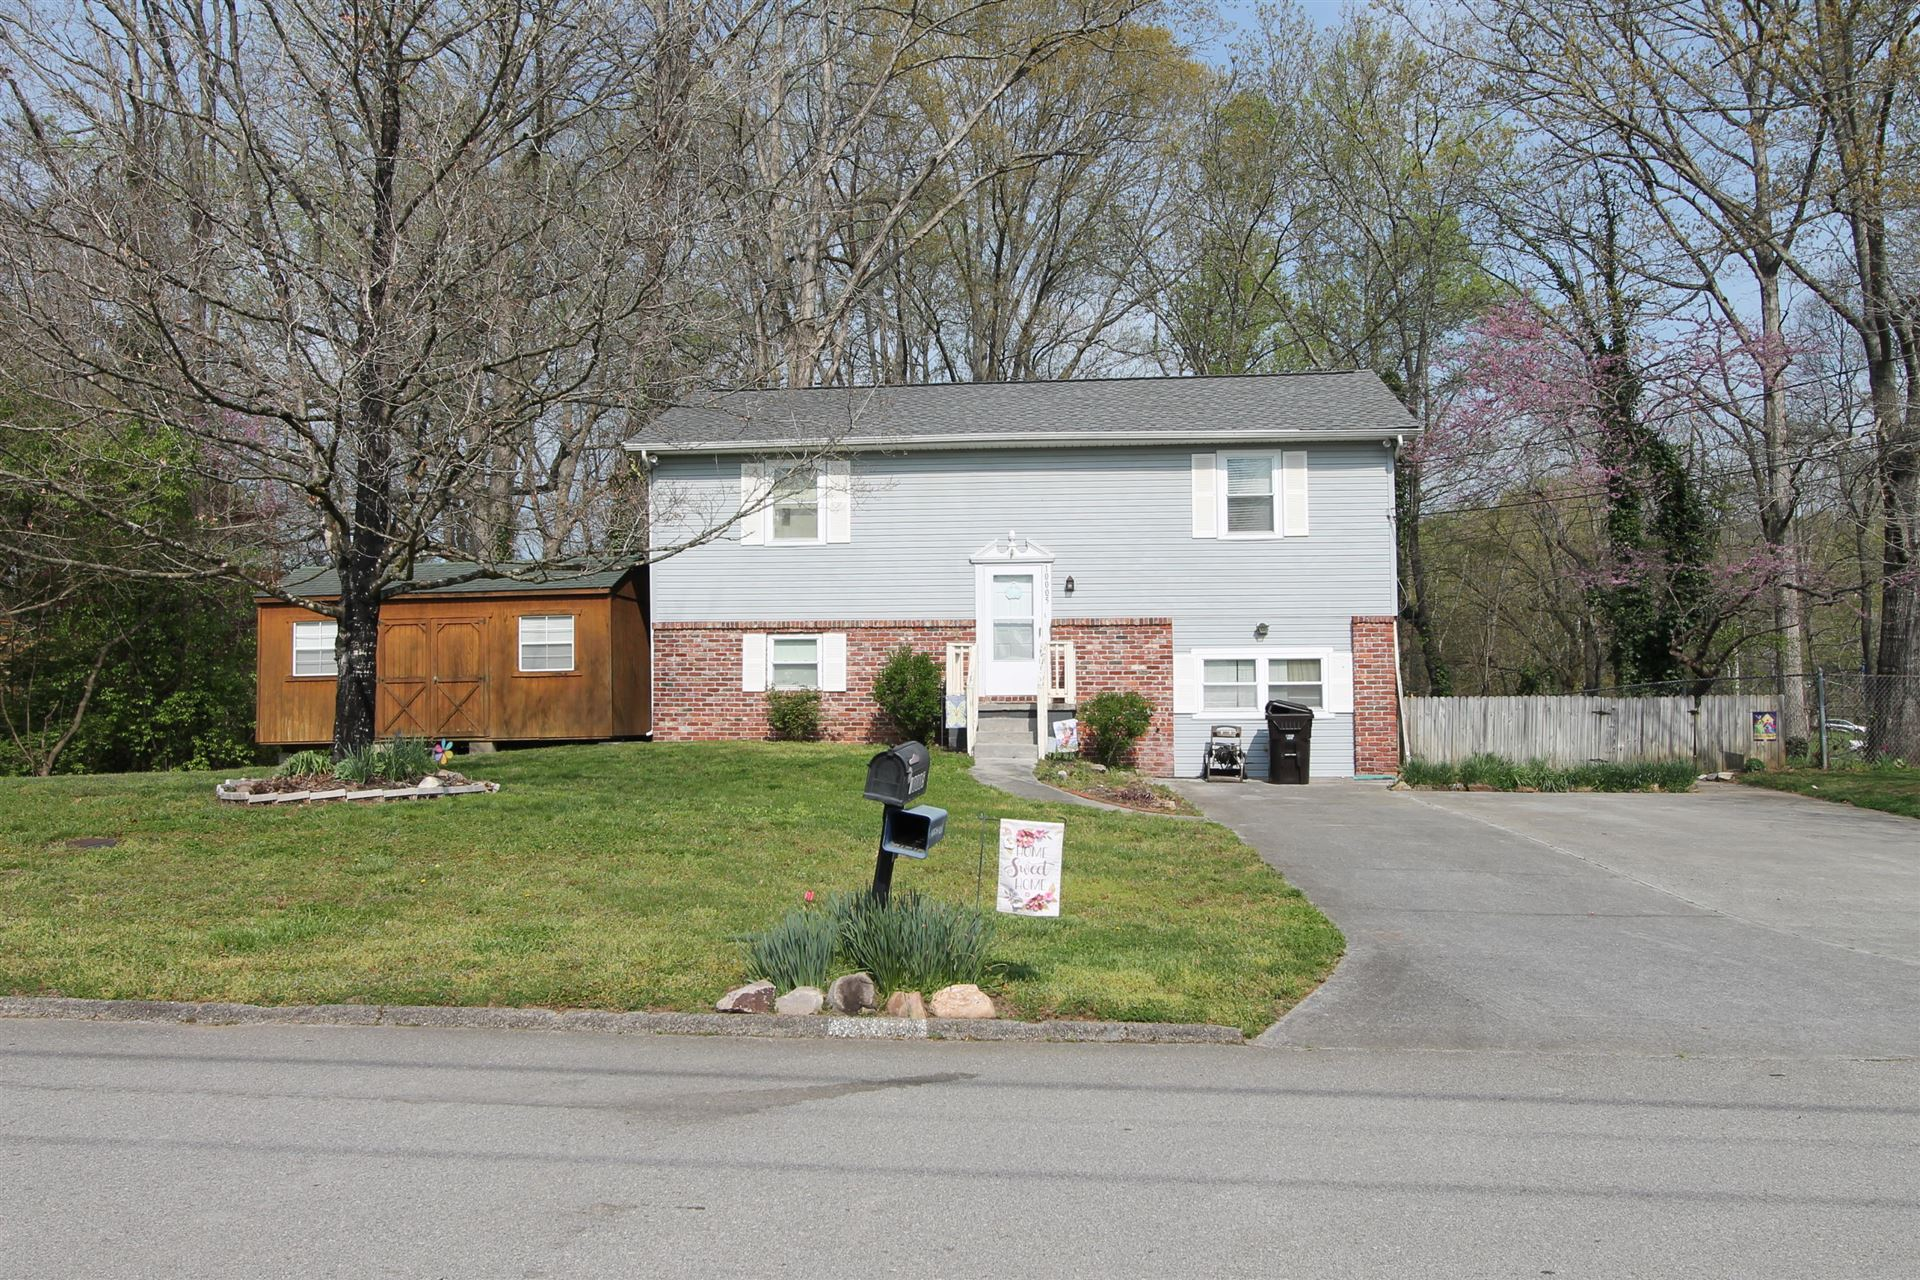 Photo of 10005 Branchview Drive, Knoxville, TN 37932 (MLS # 1148297)